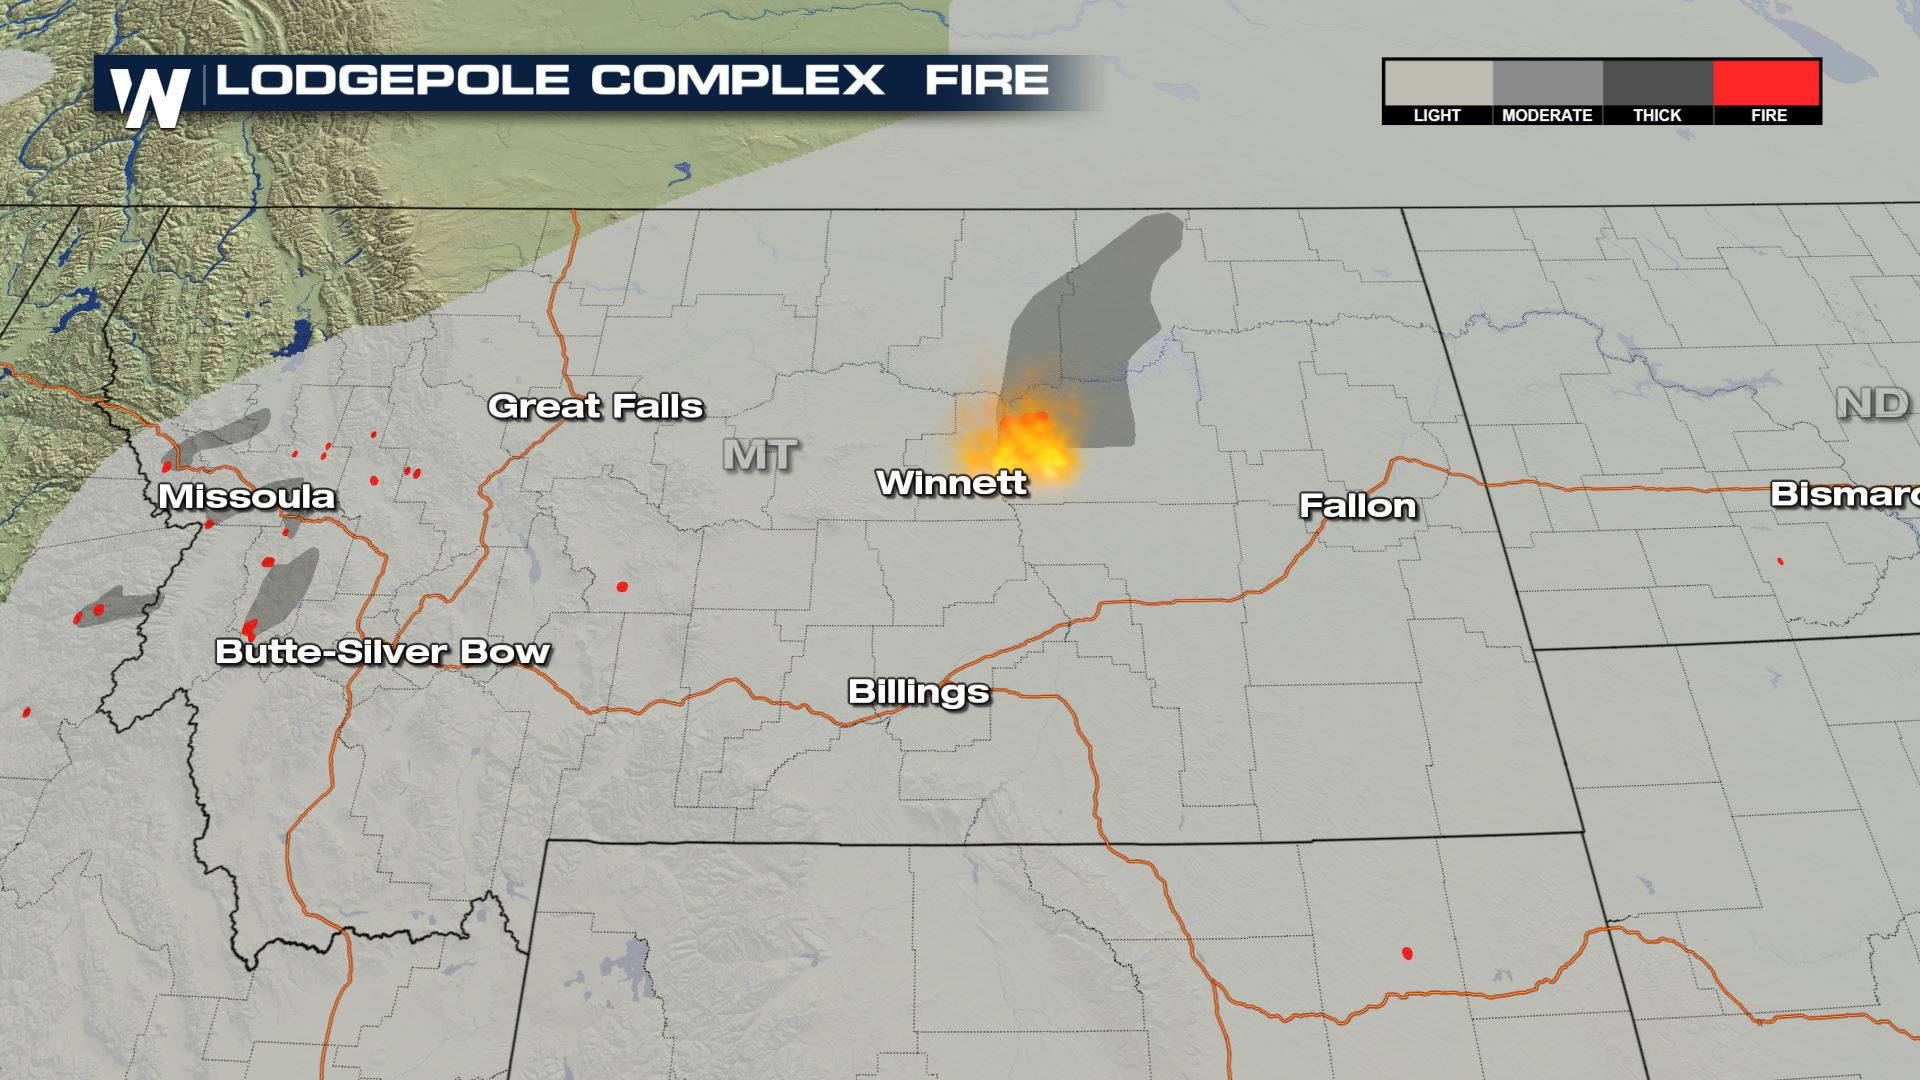 Lodgepole Complex Fire Map Lodgepole Complex Fire Burns in Central Montana   WeatherNation